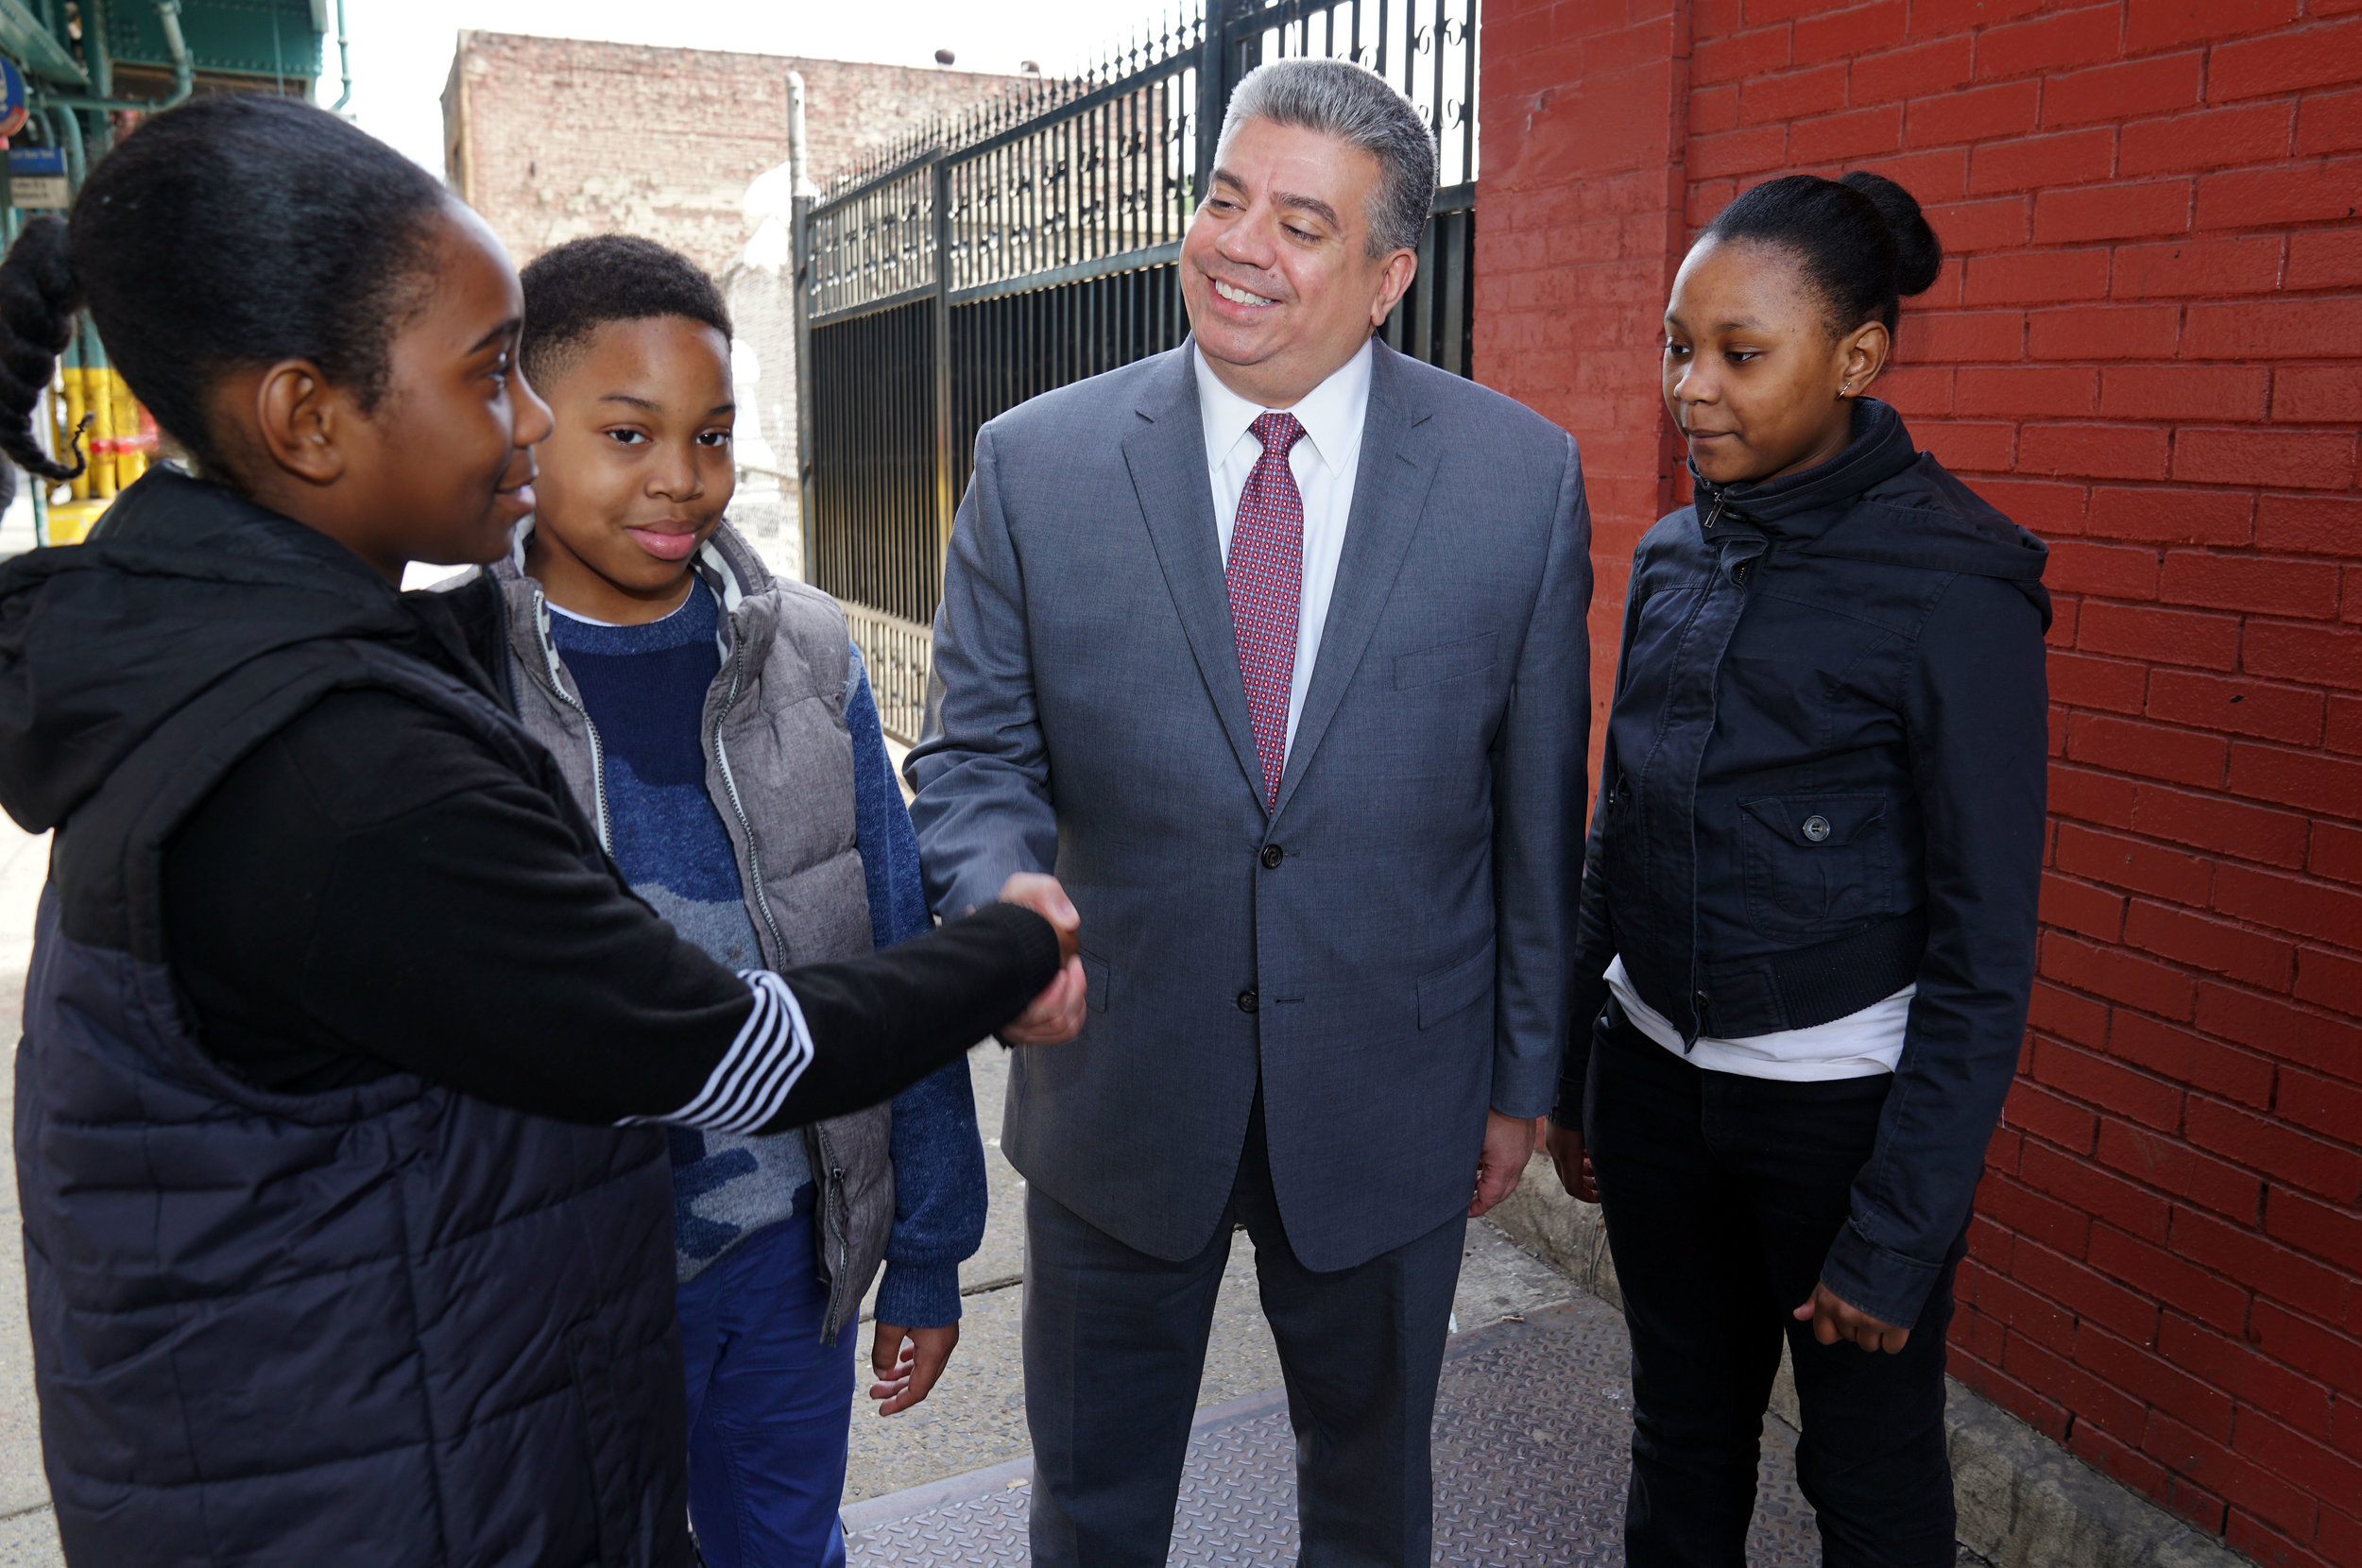 Acting Brooklyn District Attorney Eric Gonzalez